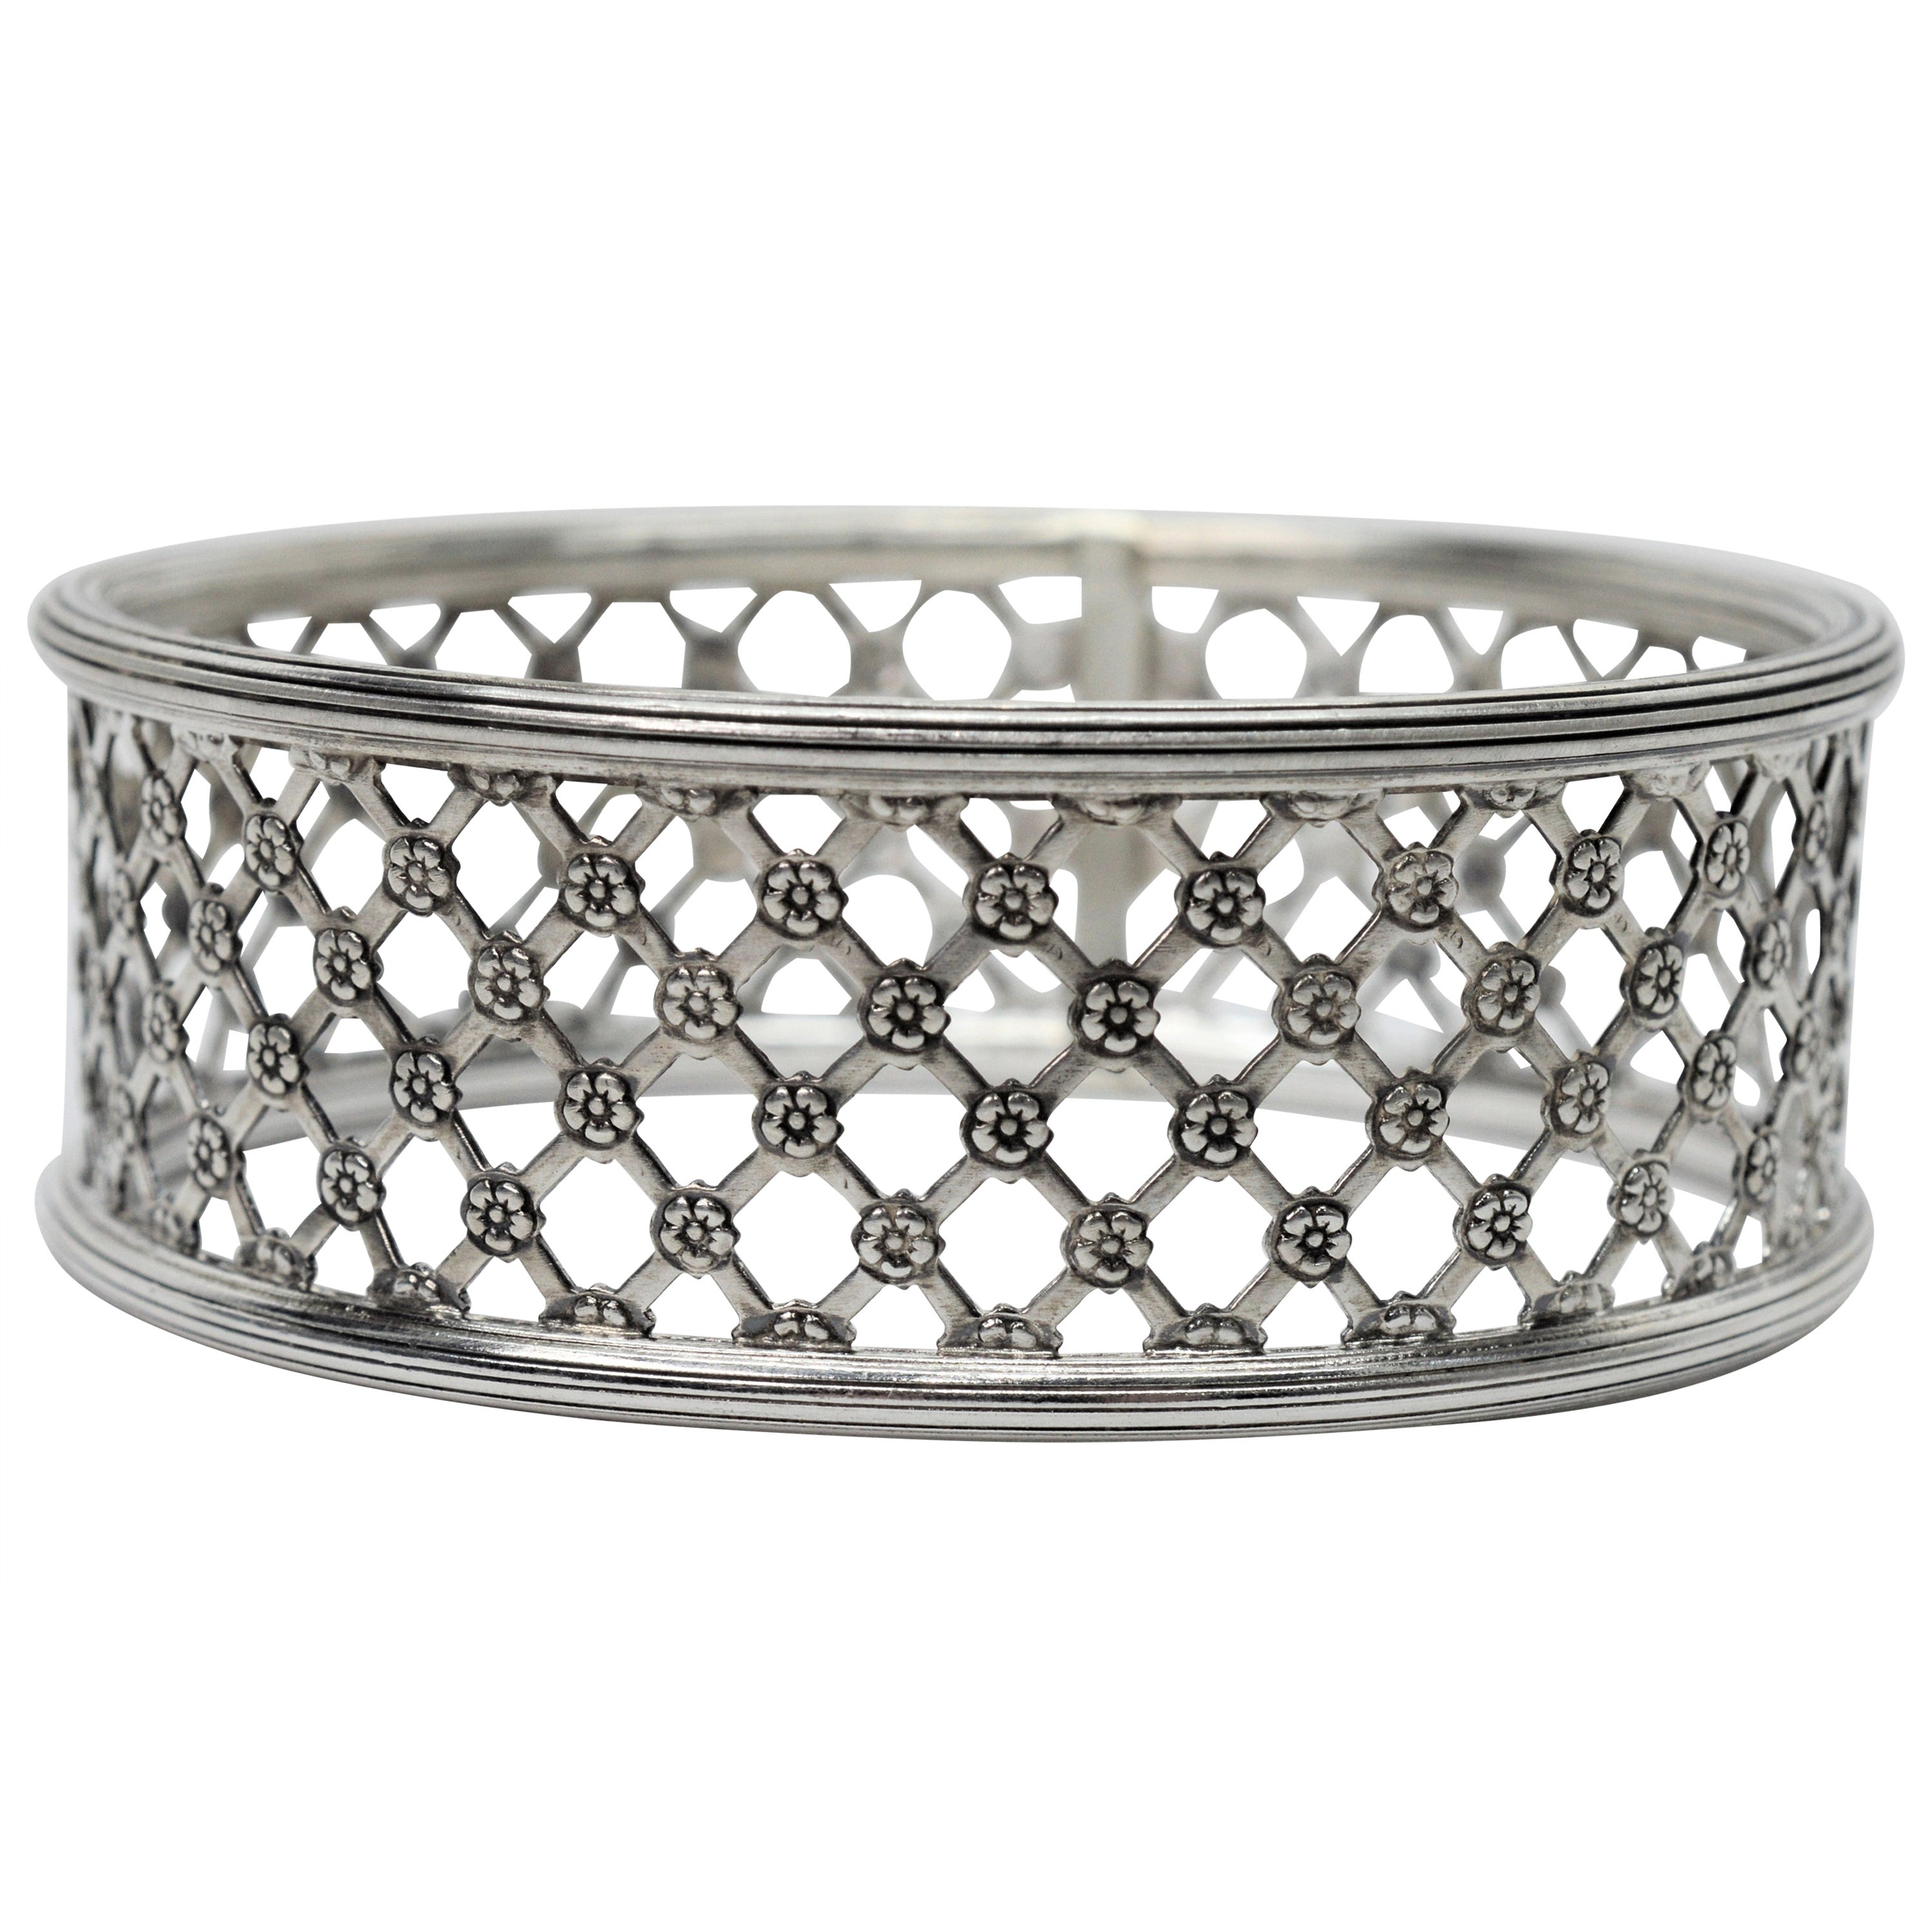 Lattice Lace Sterling Silver Bangle Bracelet